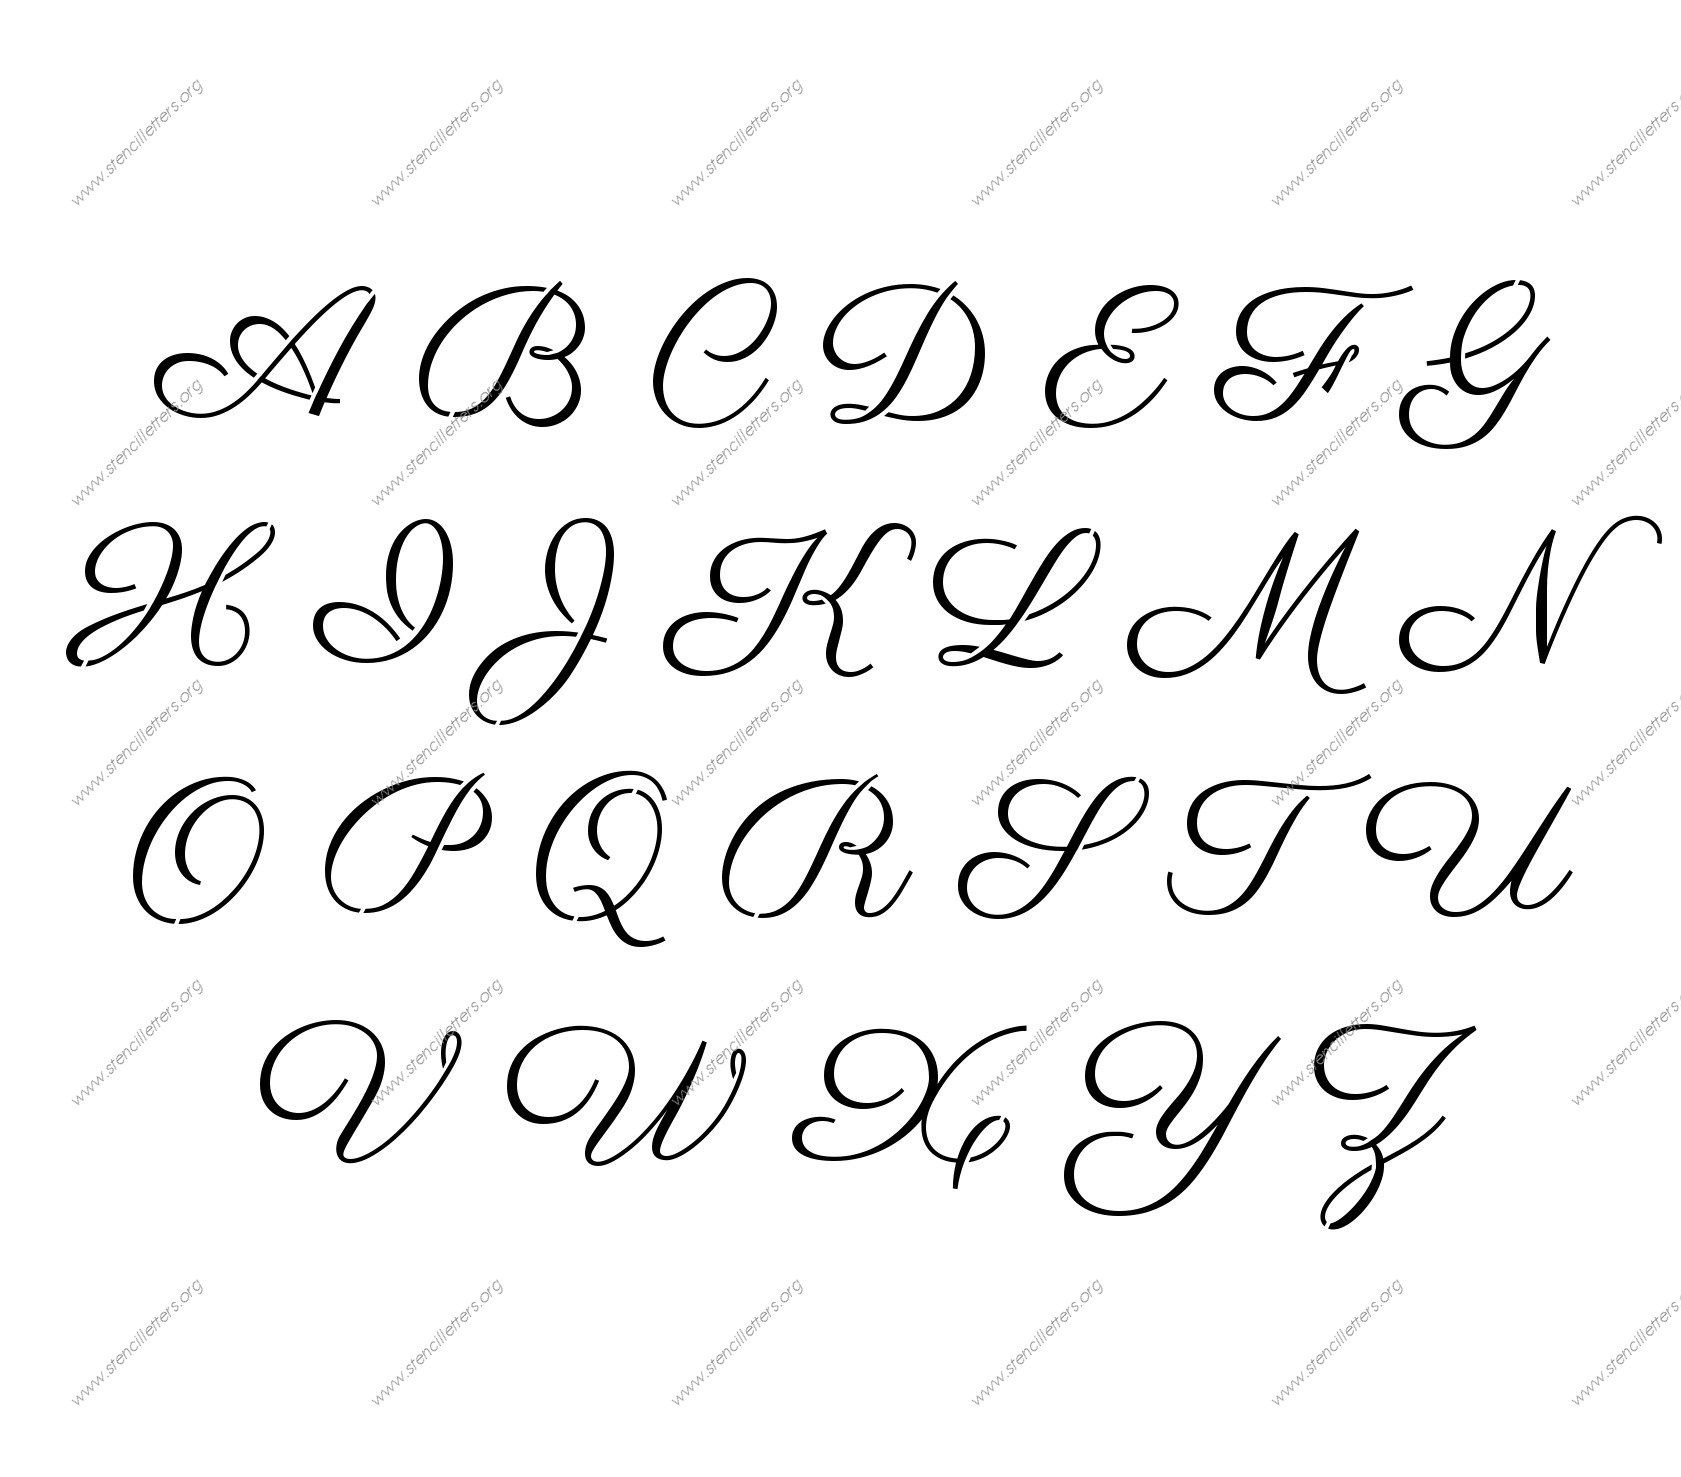 Free Printable Alphabet Stencil Letters Template | Art & Crafts - Free Printable Fonts